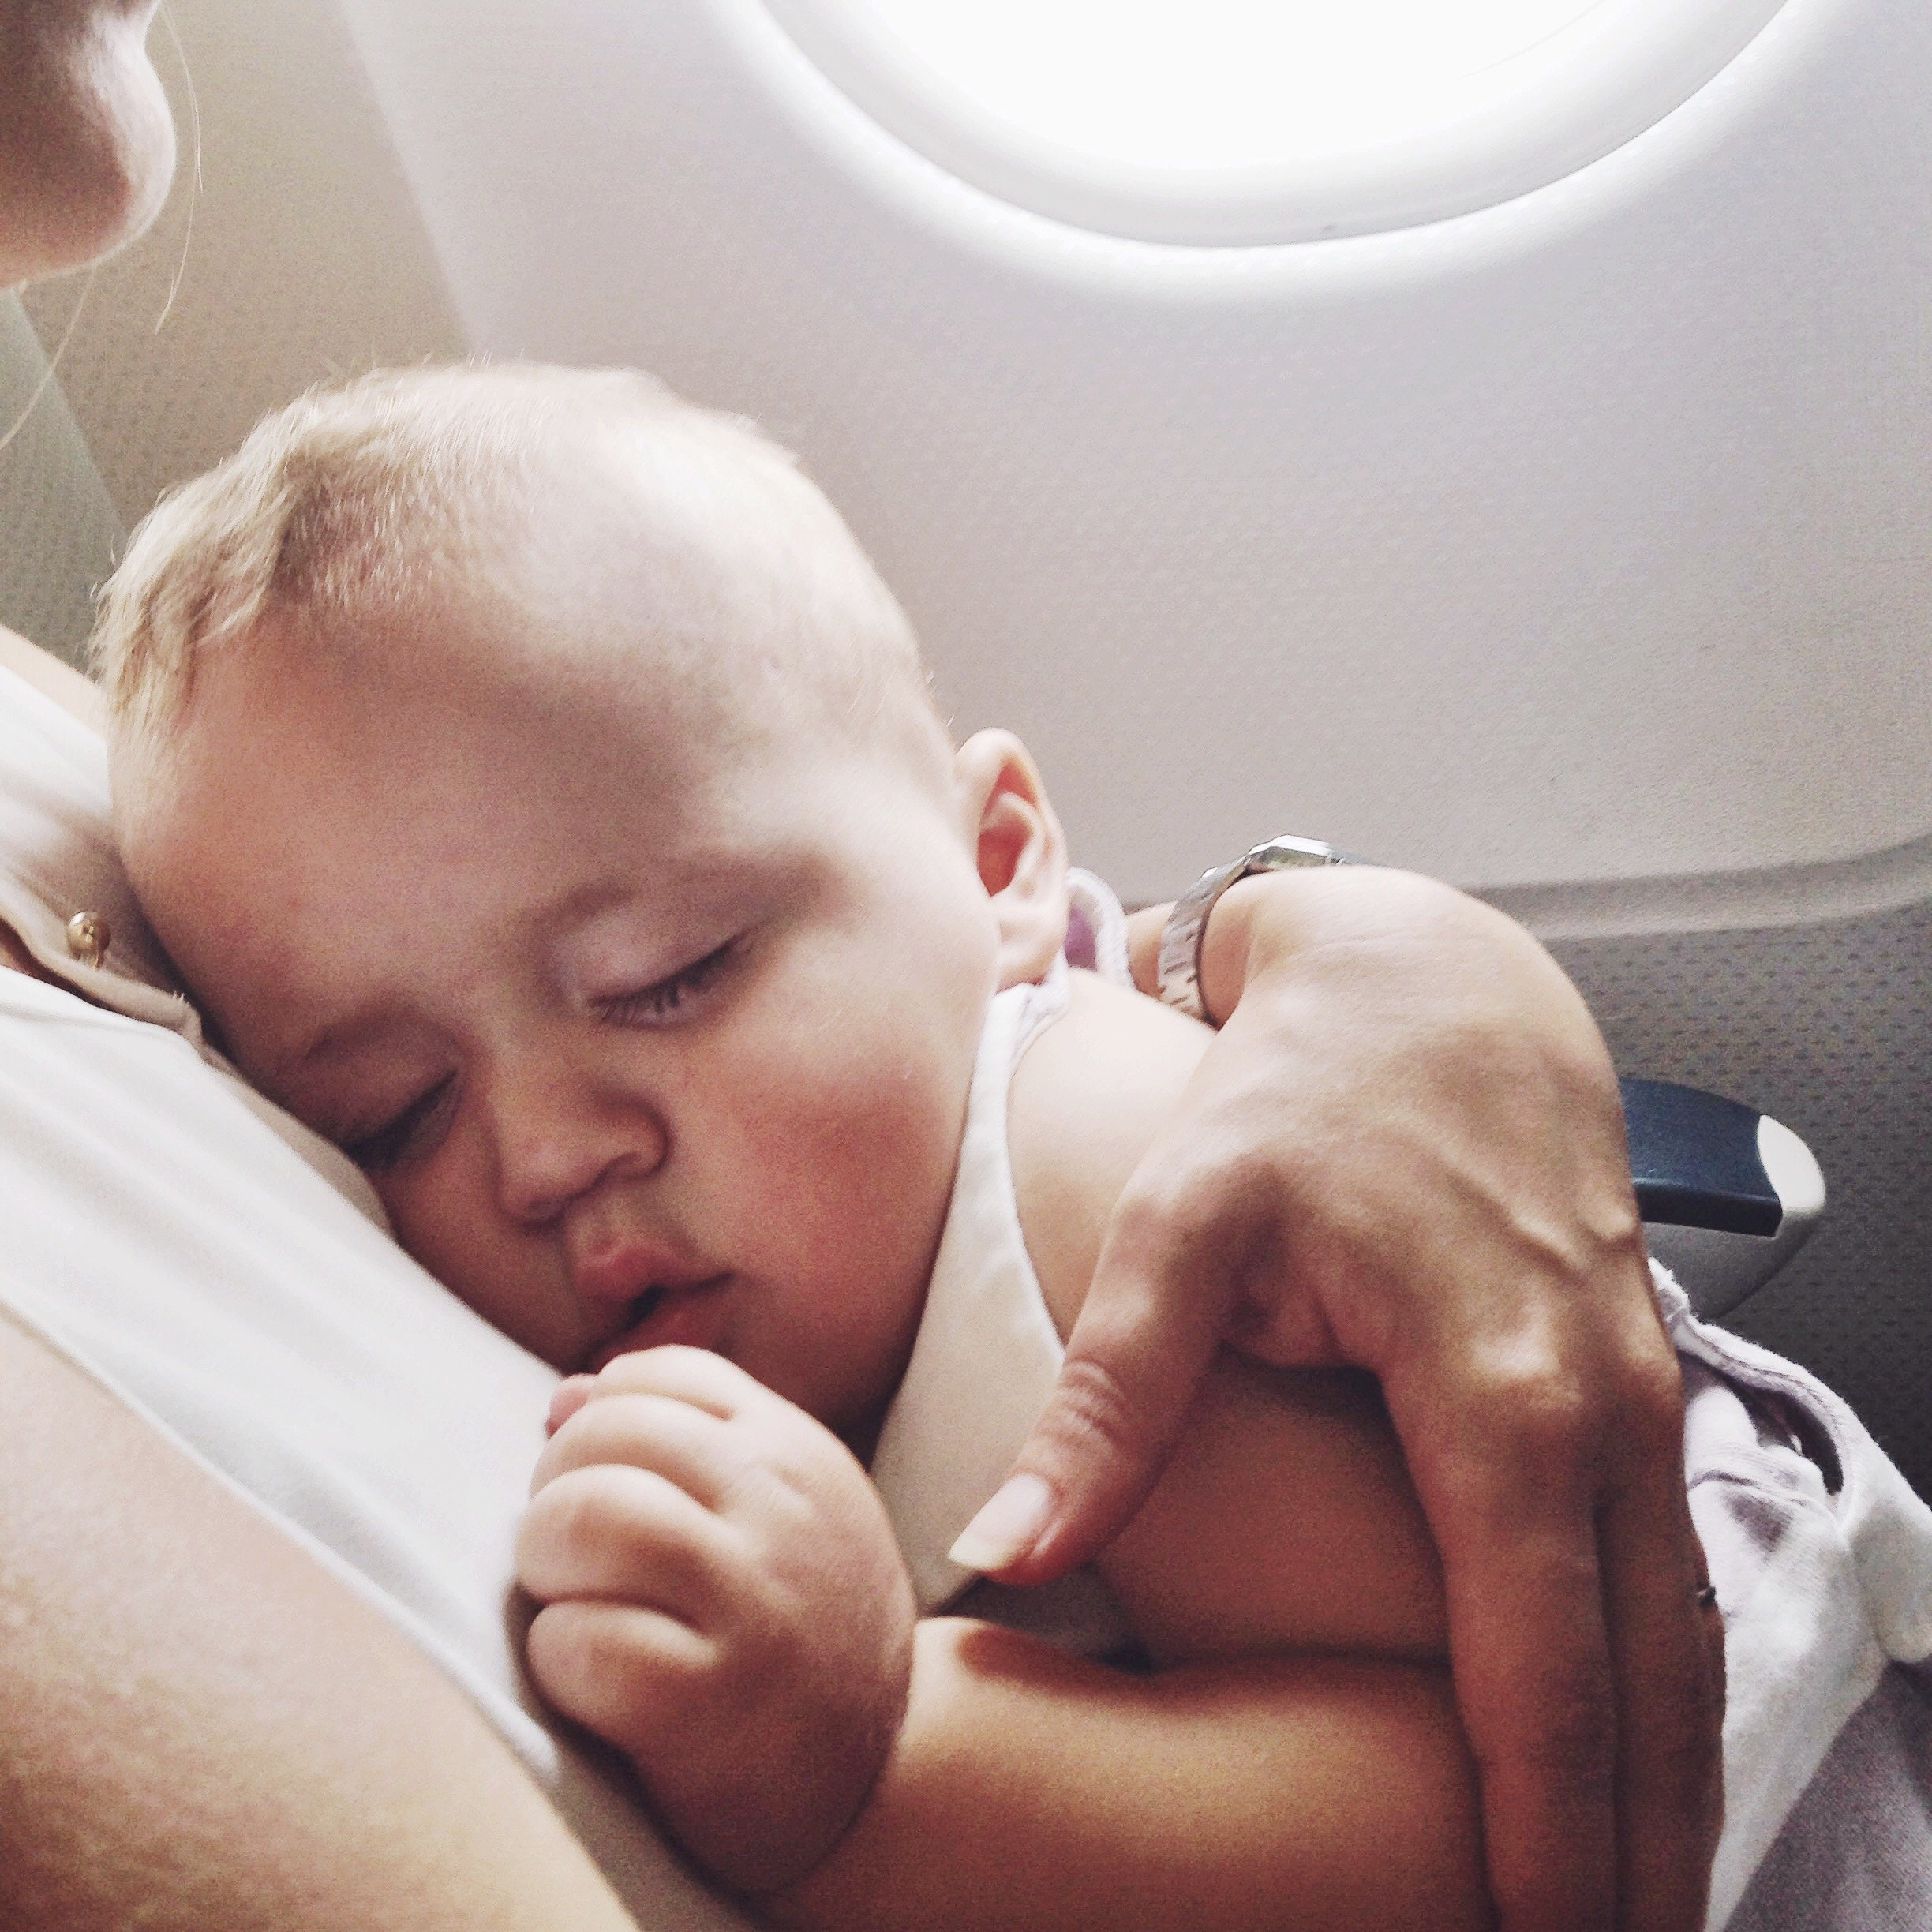 Baby boy sleeping on mother's lap in an airplane. Photo taken with an iphone5.